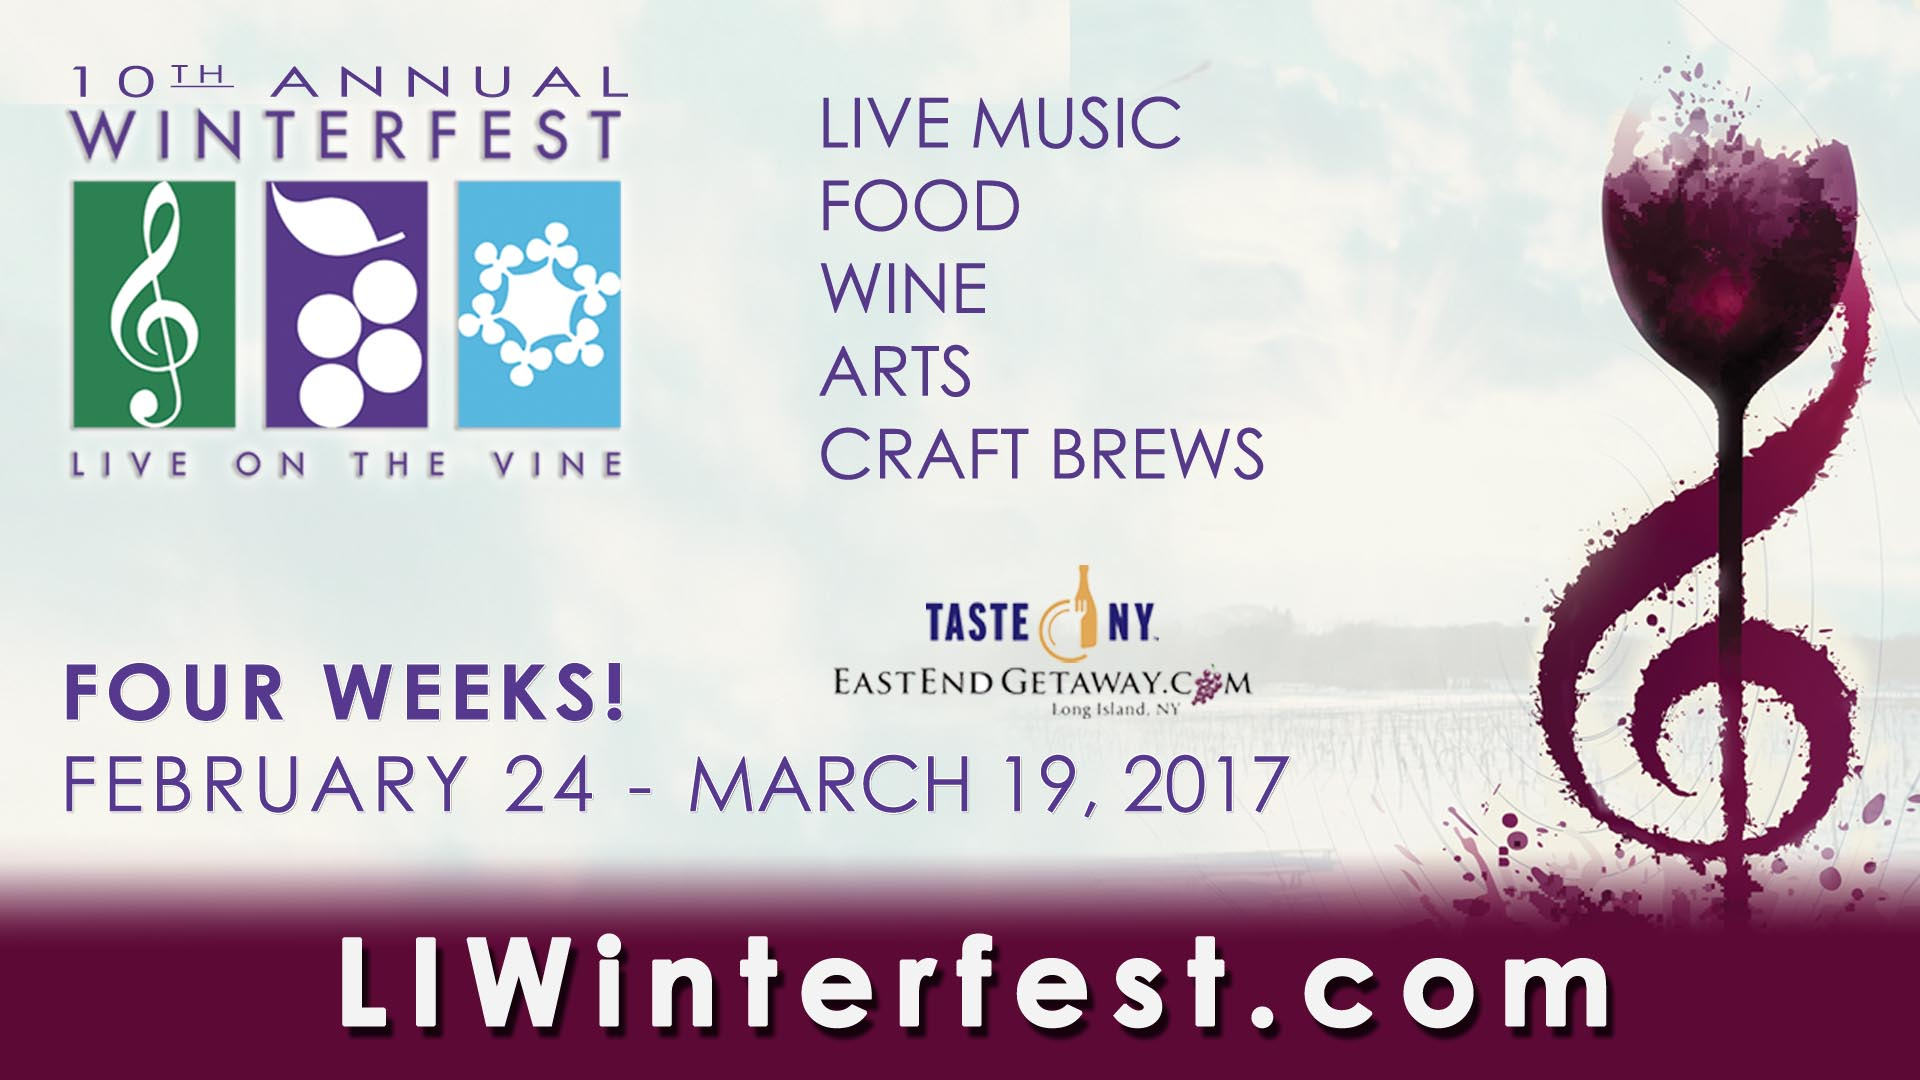 Winterfest 2017, Feb 24-March 19,2017